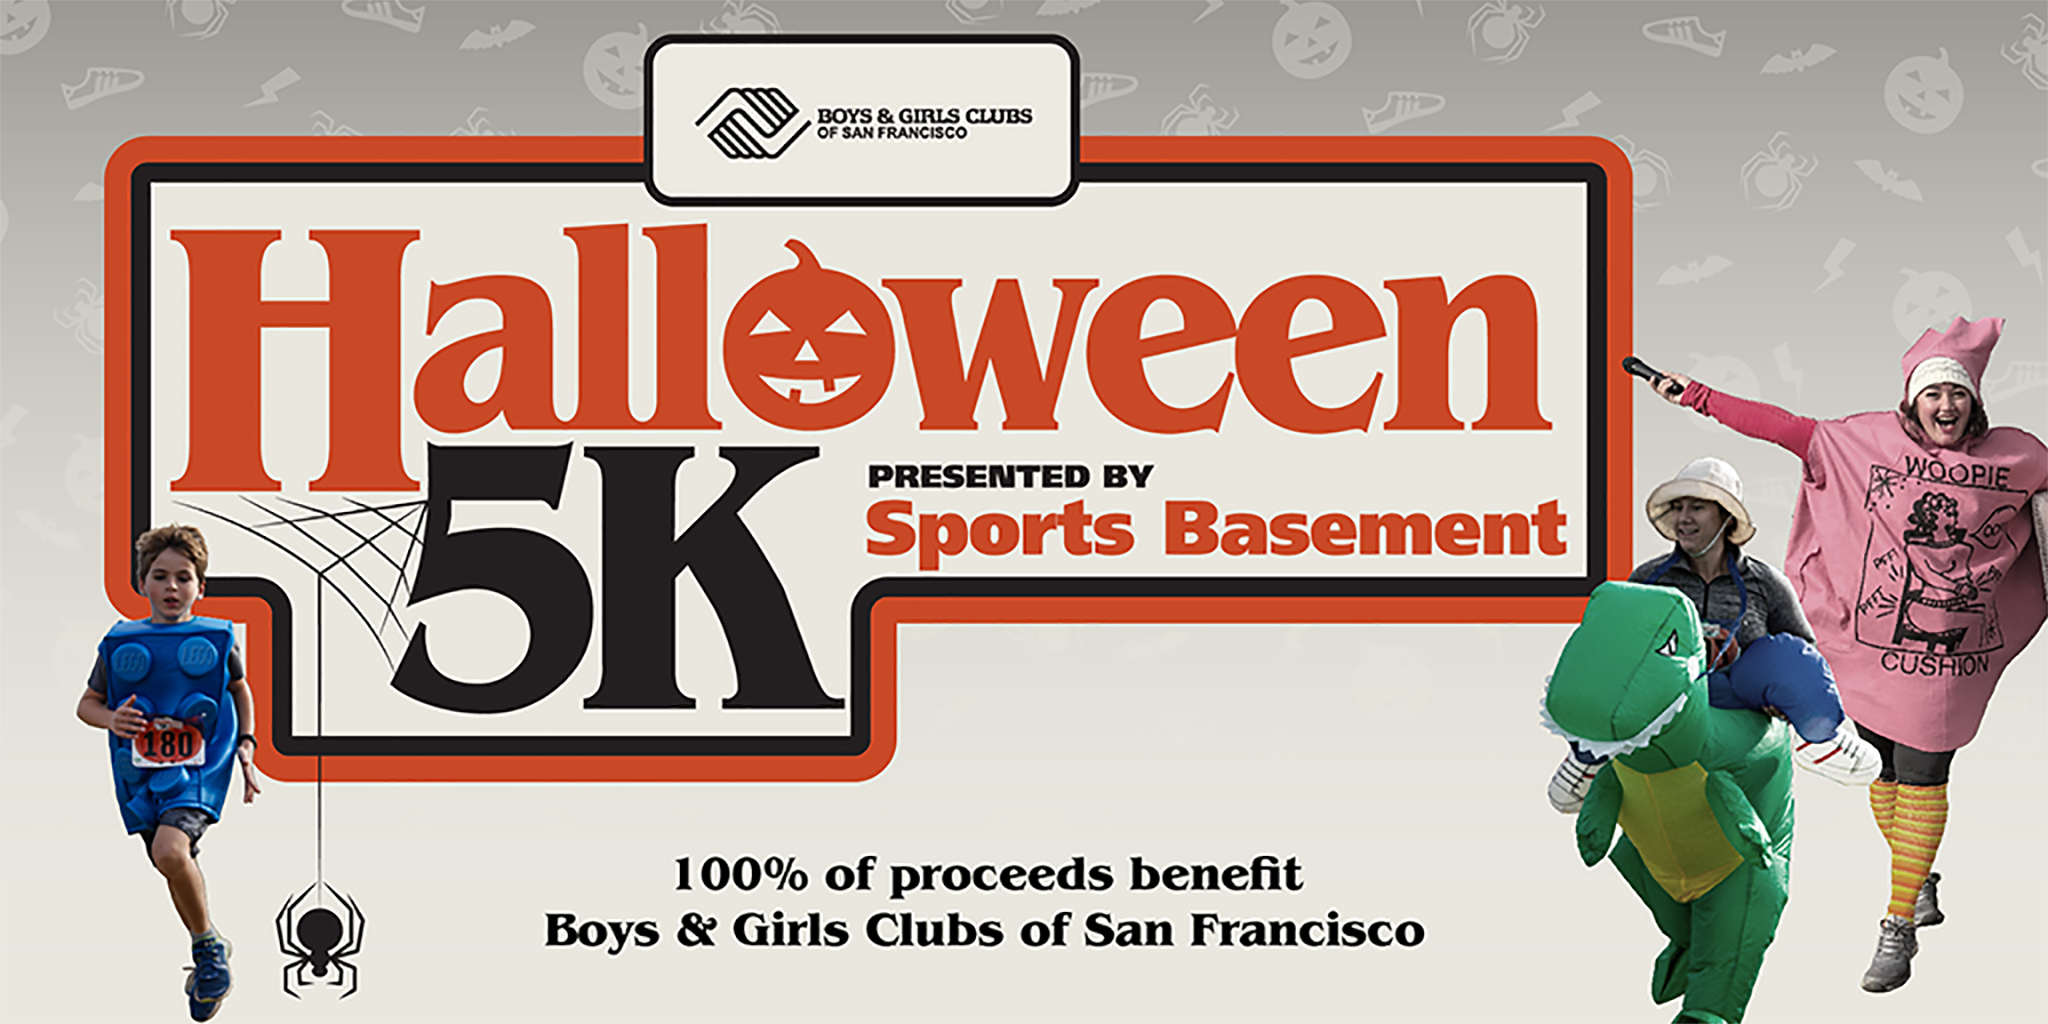 Sports Basement presents the 2020 Halloween 5K. 100% of proceeds benefit Boys and Girls Clubs of San Francisco.